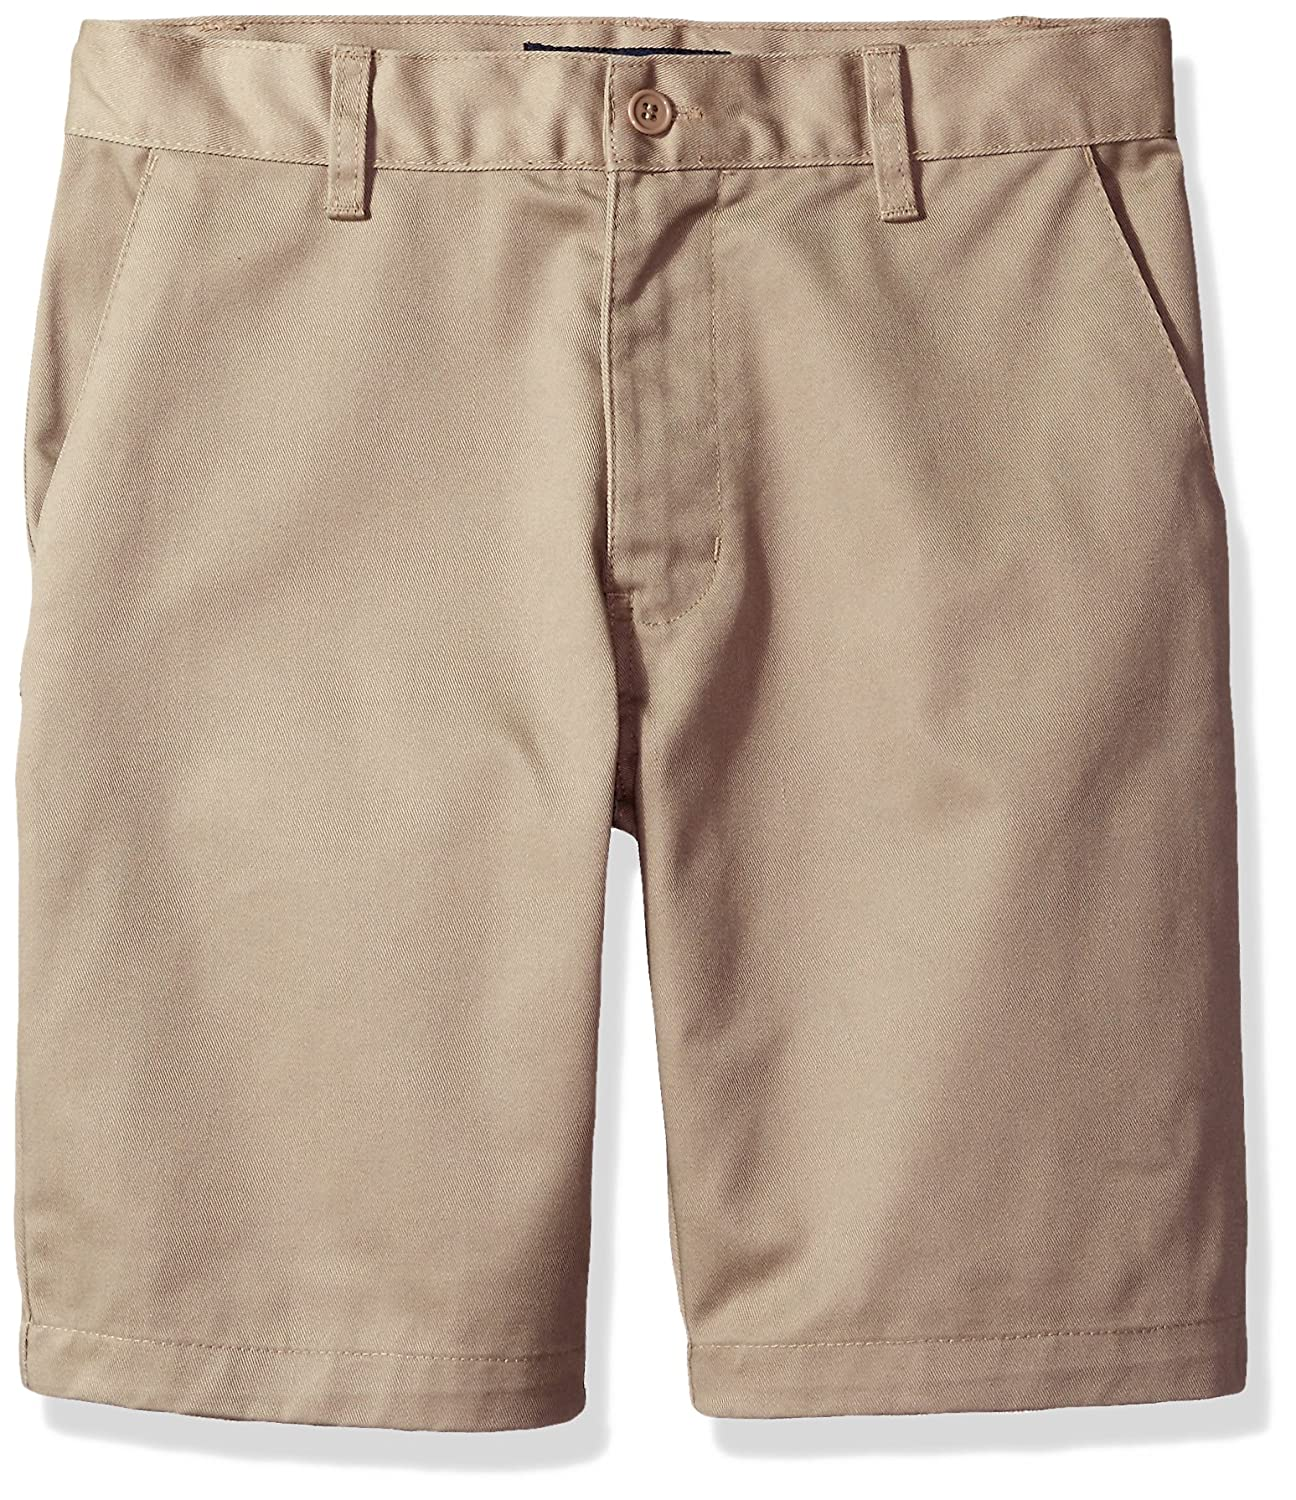 U.S. Polo Assn. SHORTS ボーイズ